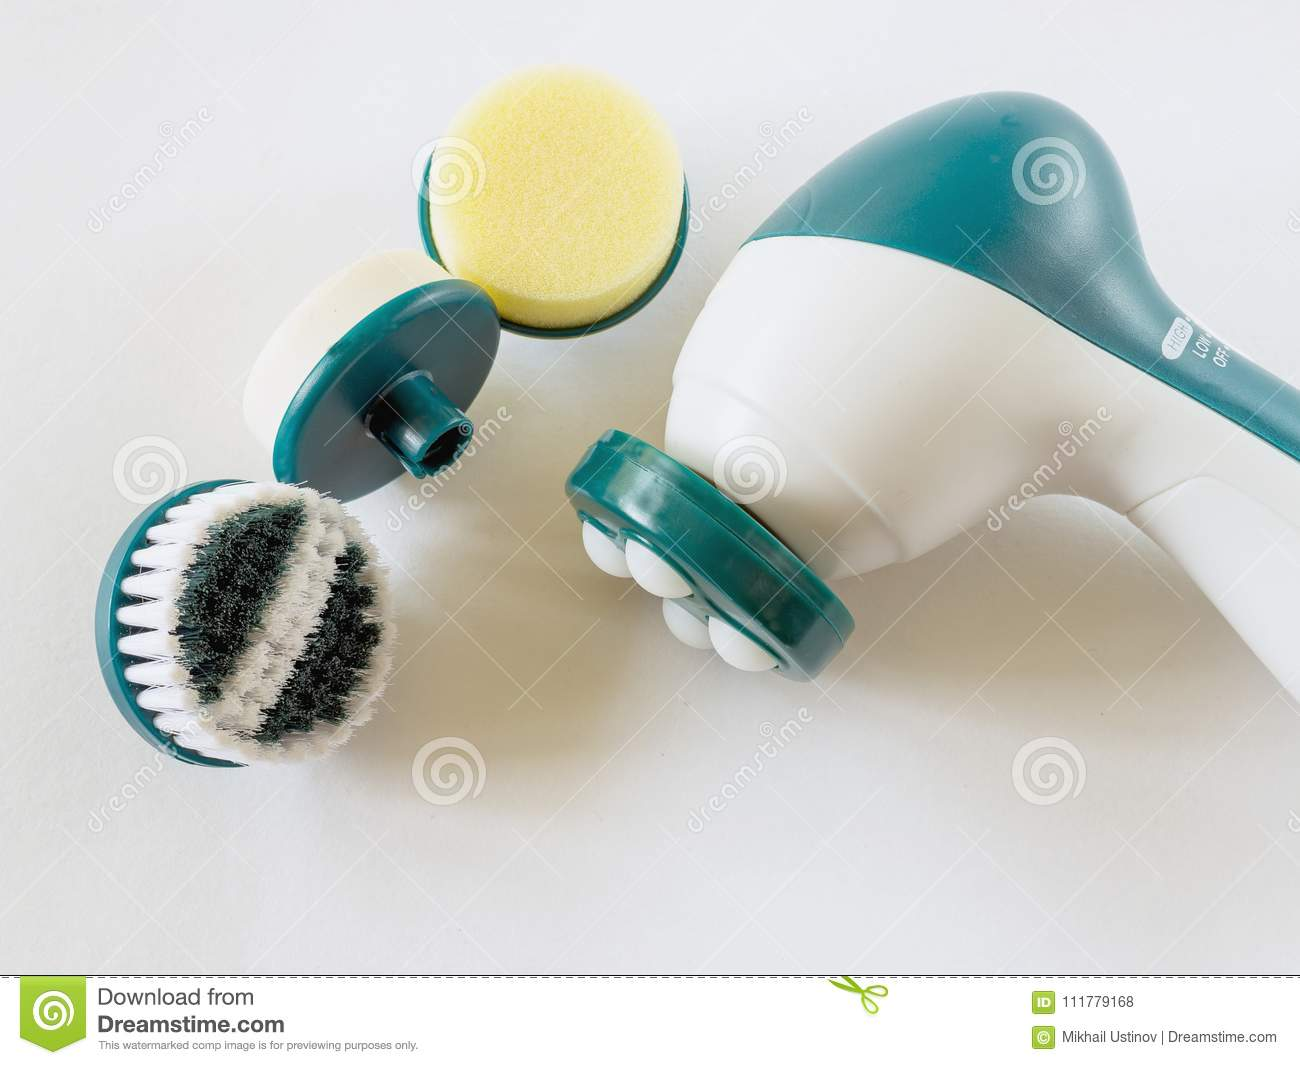 Compact massager with replaceable nozzles